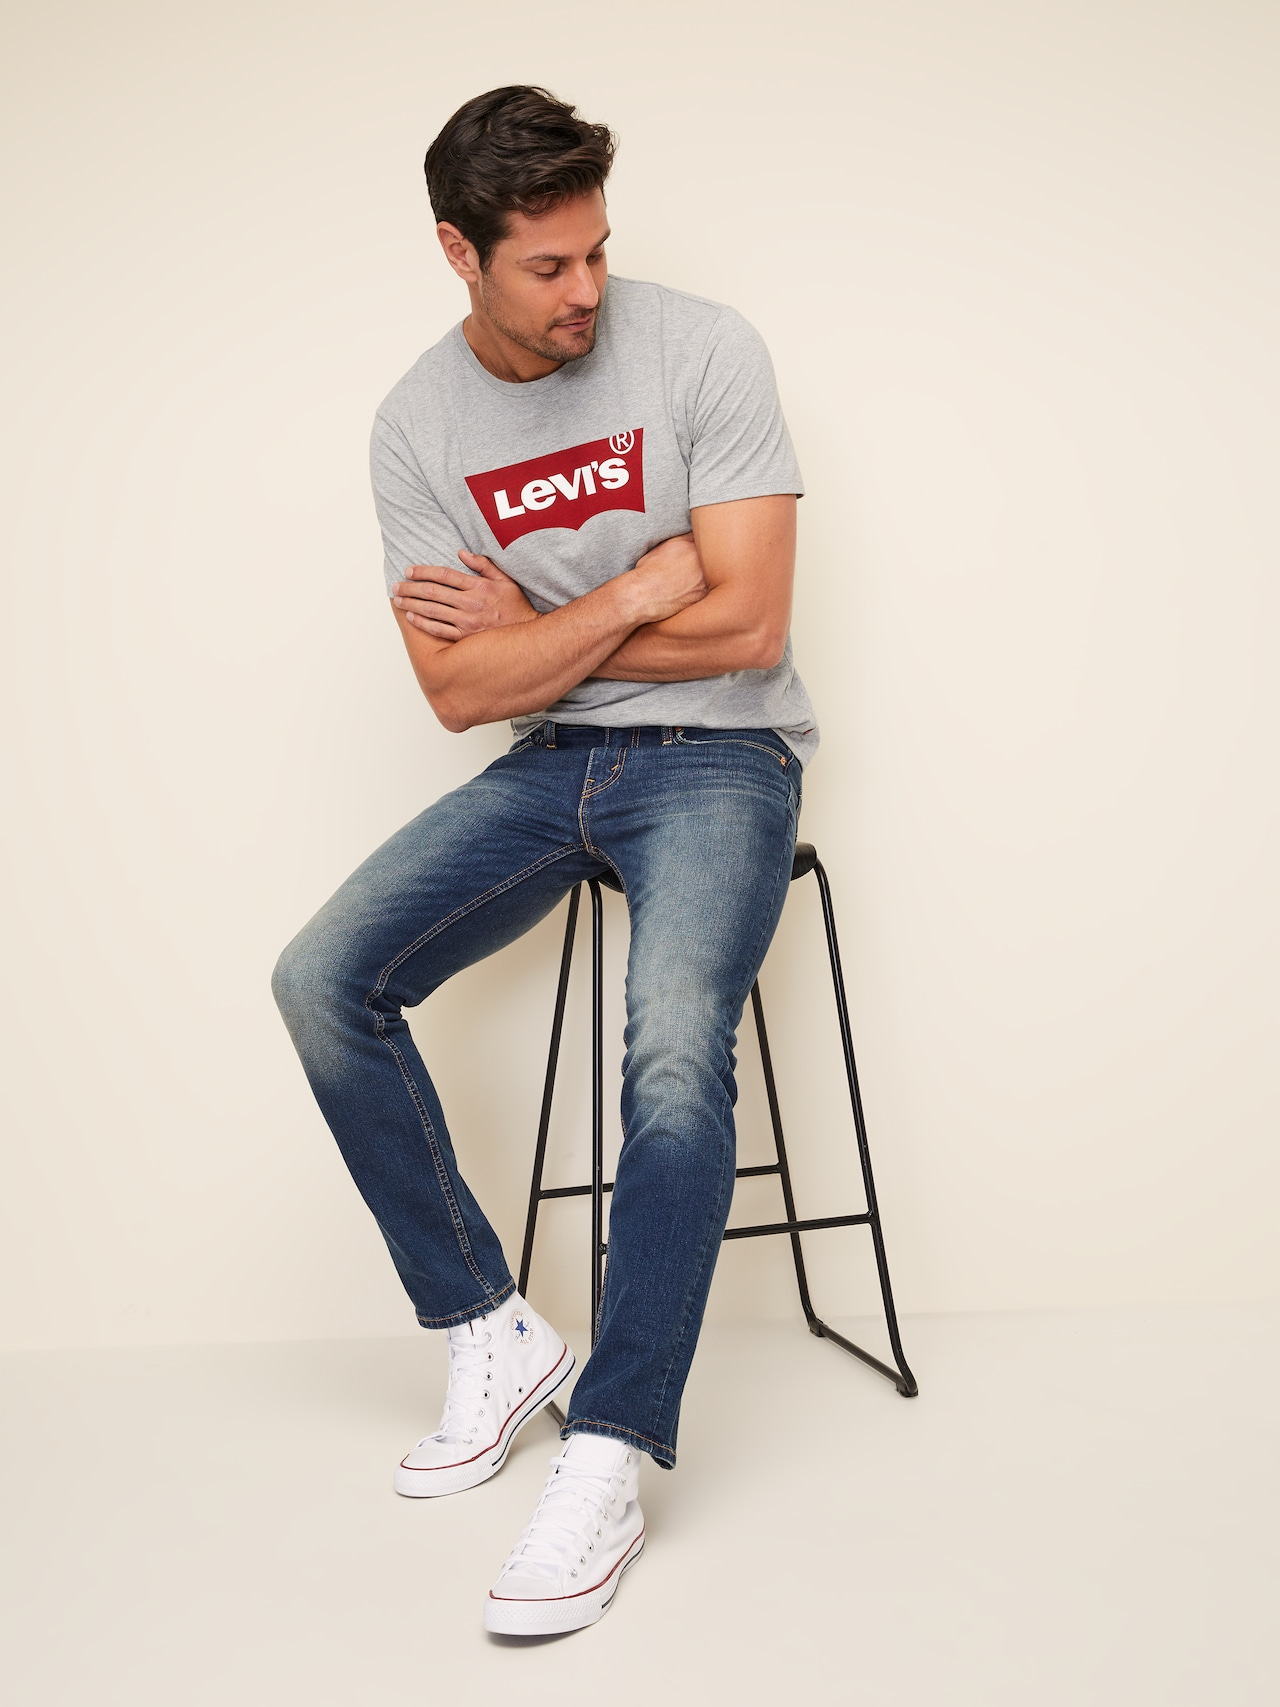 67d0869597b7d1 Levi's 511 Slim Jean In Canyon Dark - Just Jeans Online